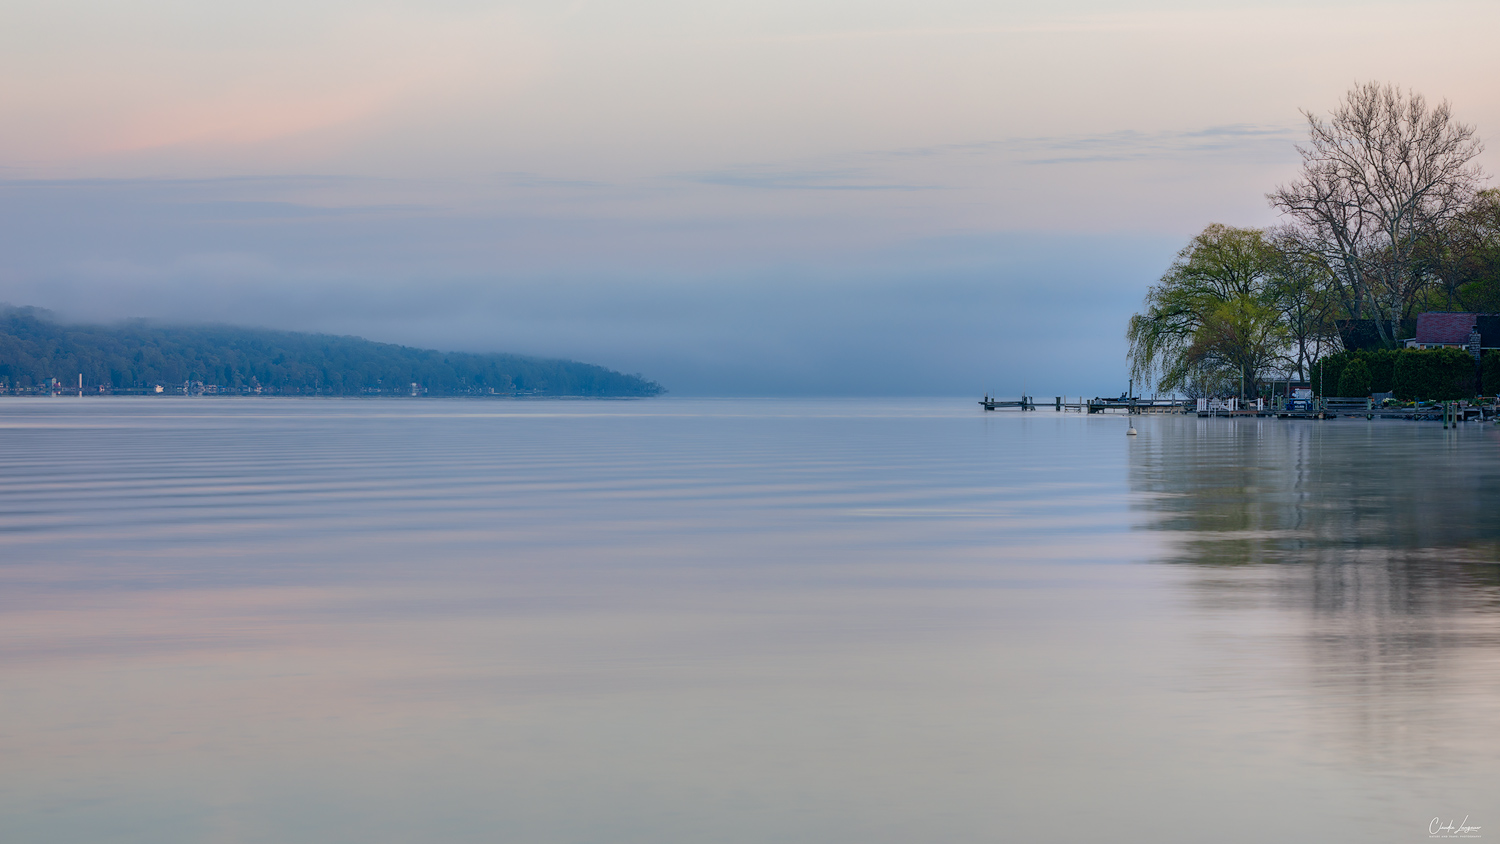 View of Cayuga Lake at sunrise in Ithaca in New York.